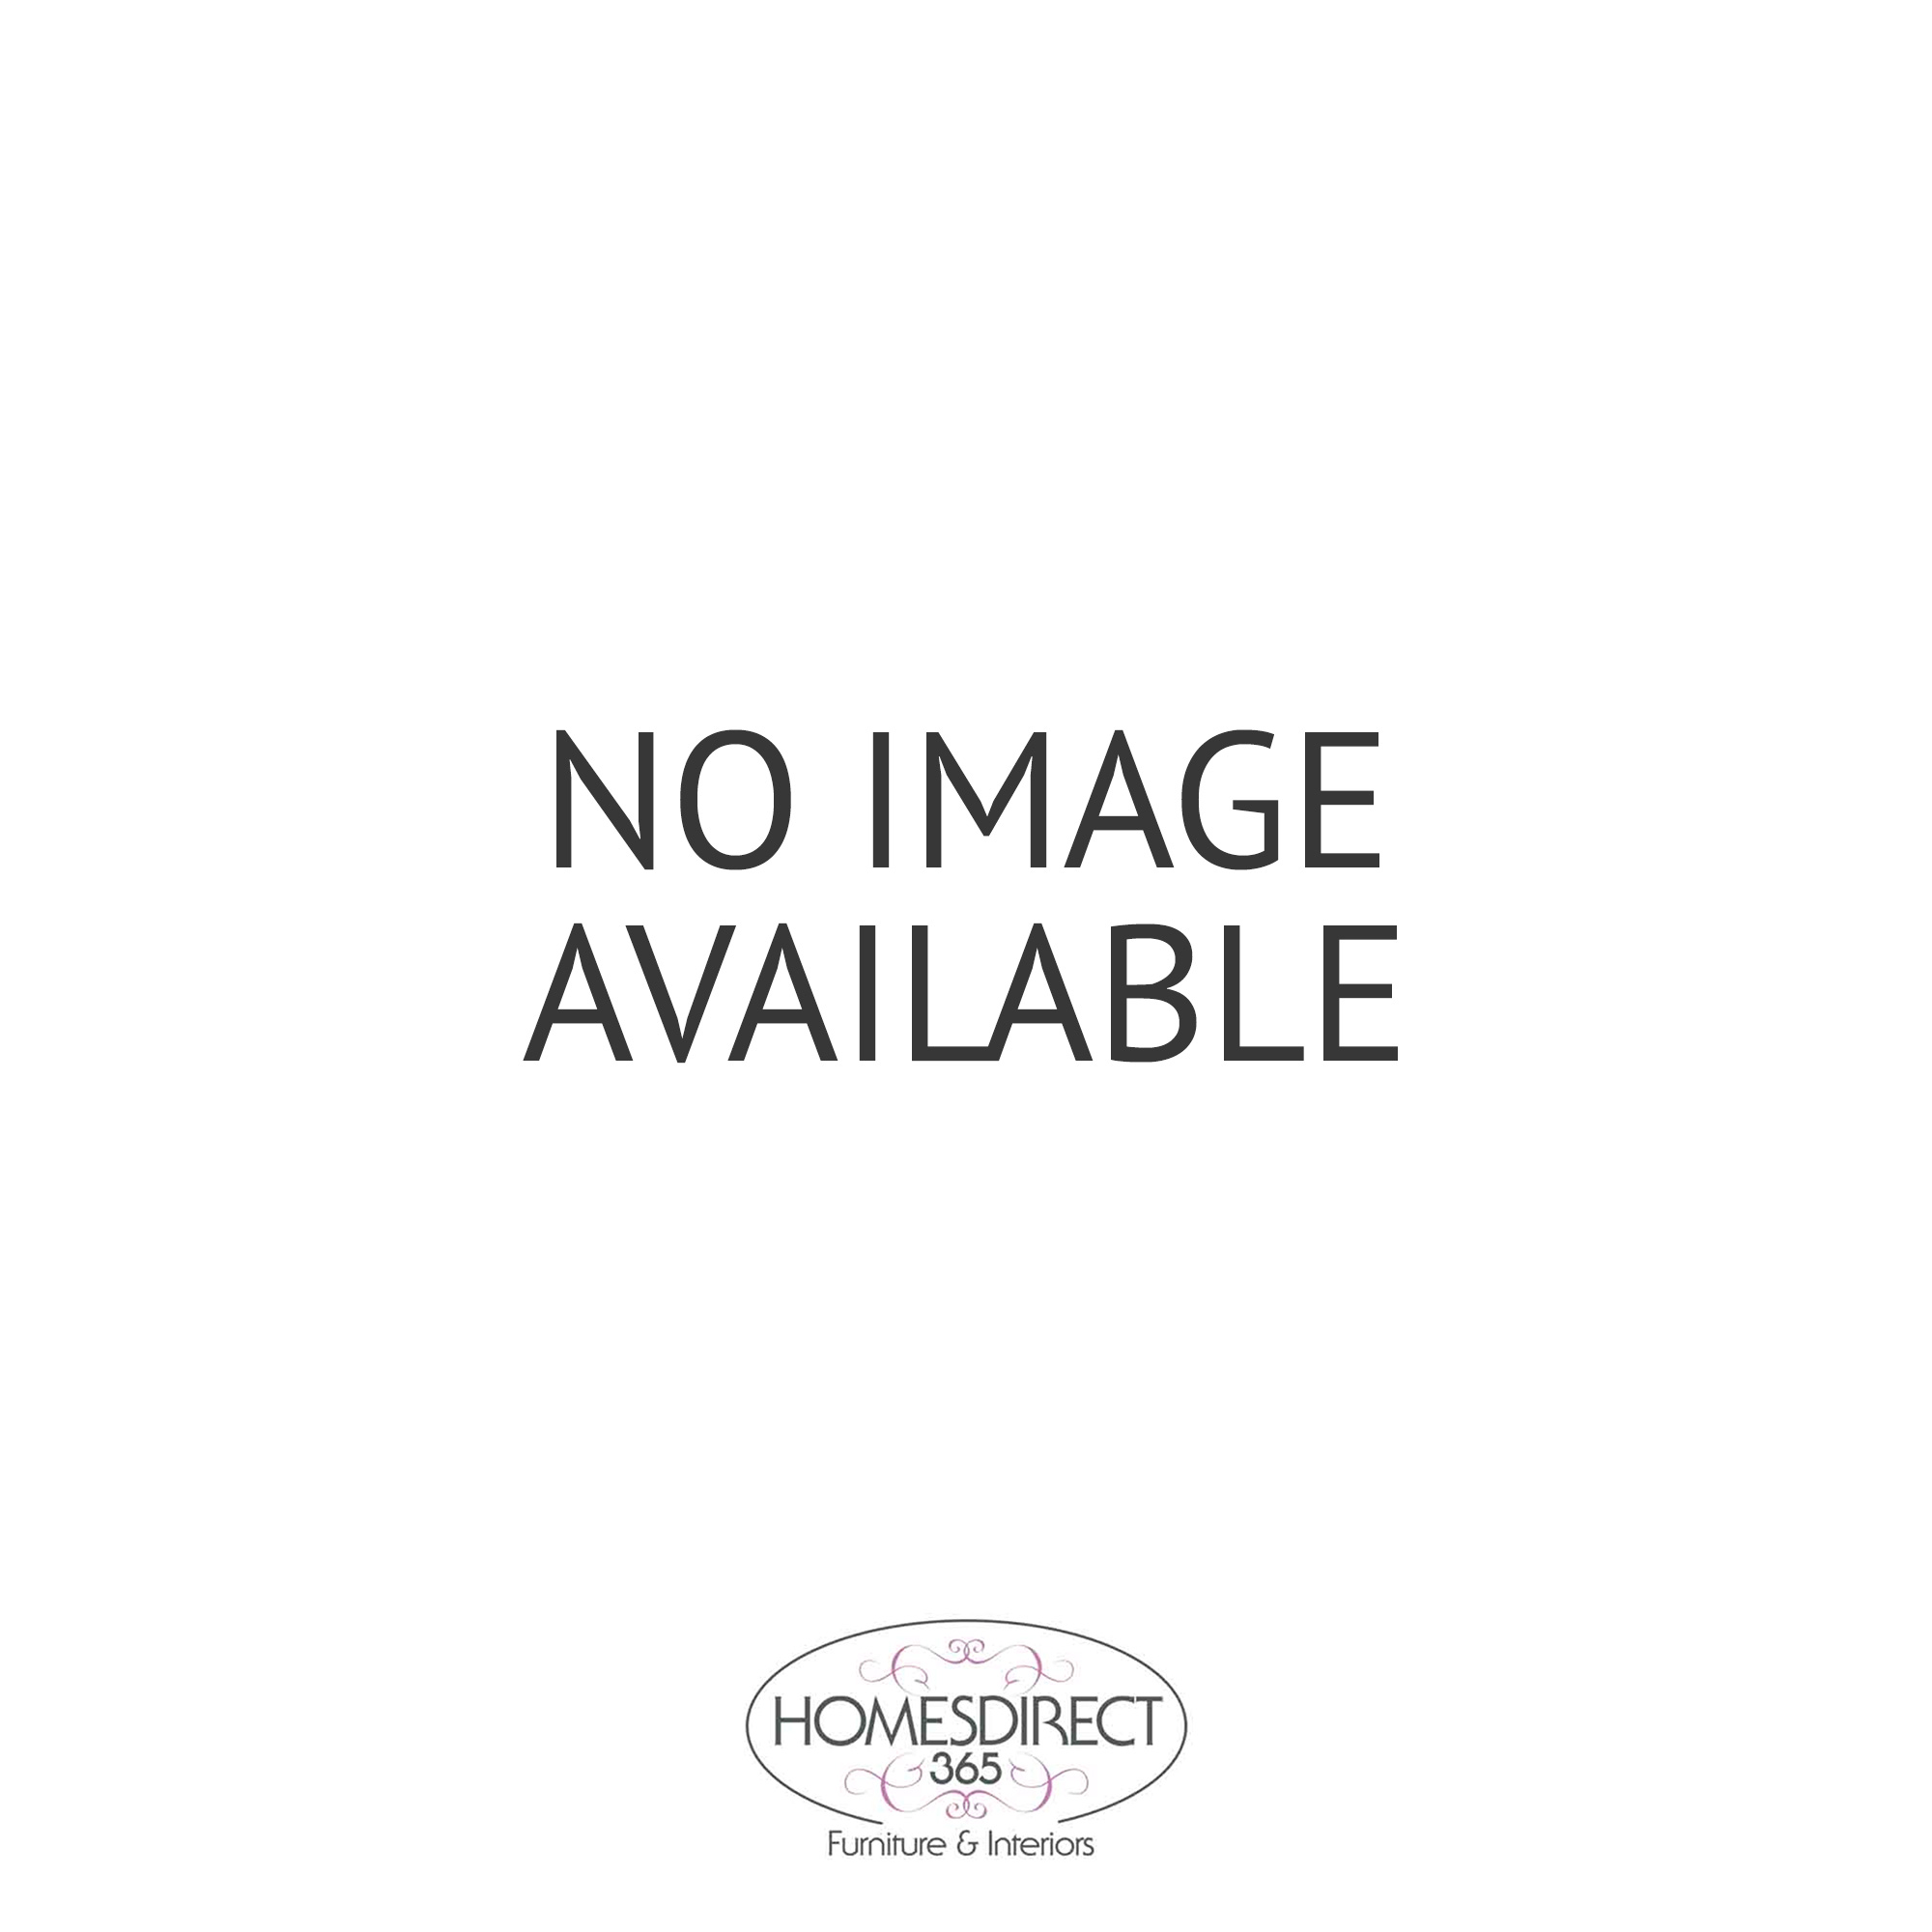 Driftwood Coffee Table Teak Root Rectangular With Shelf ...